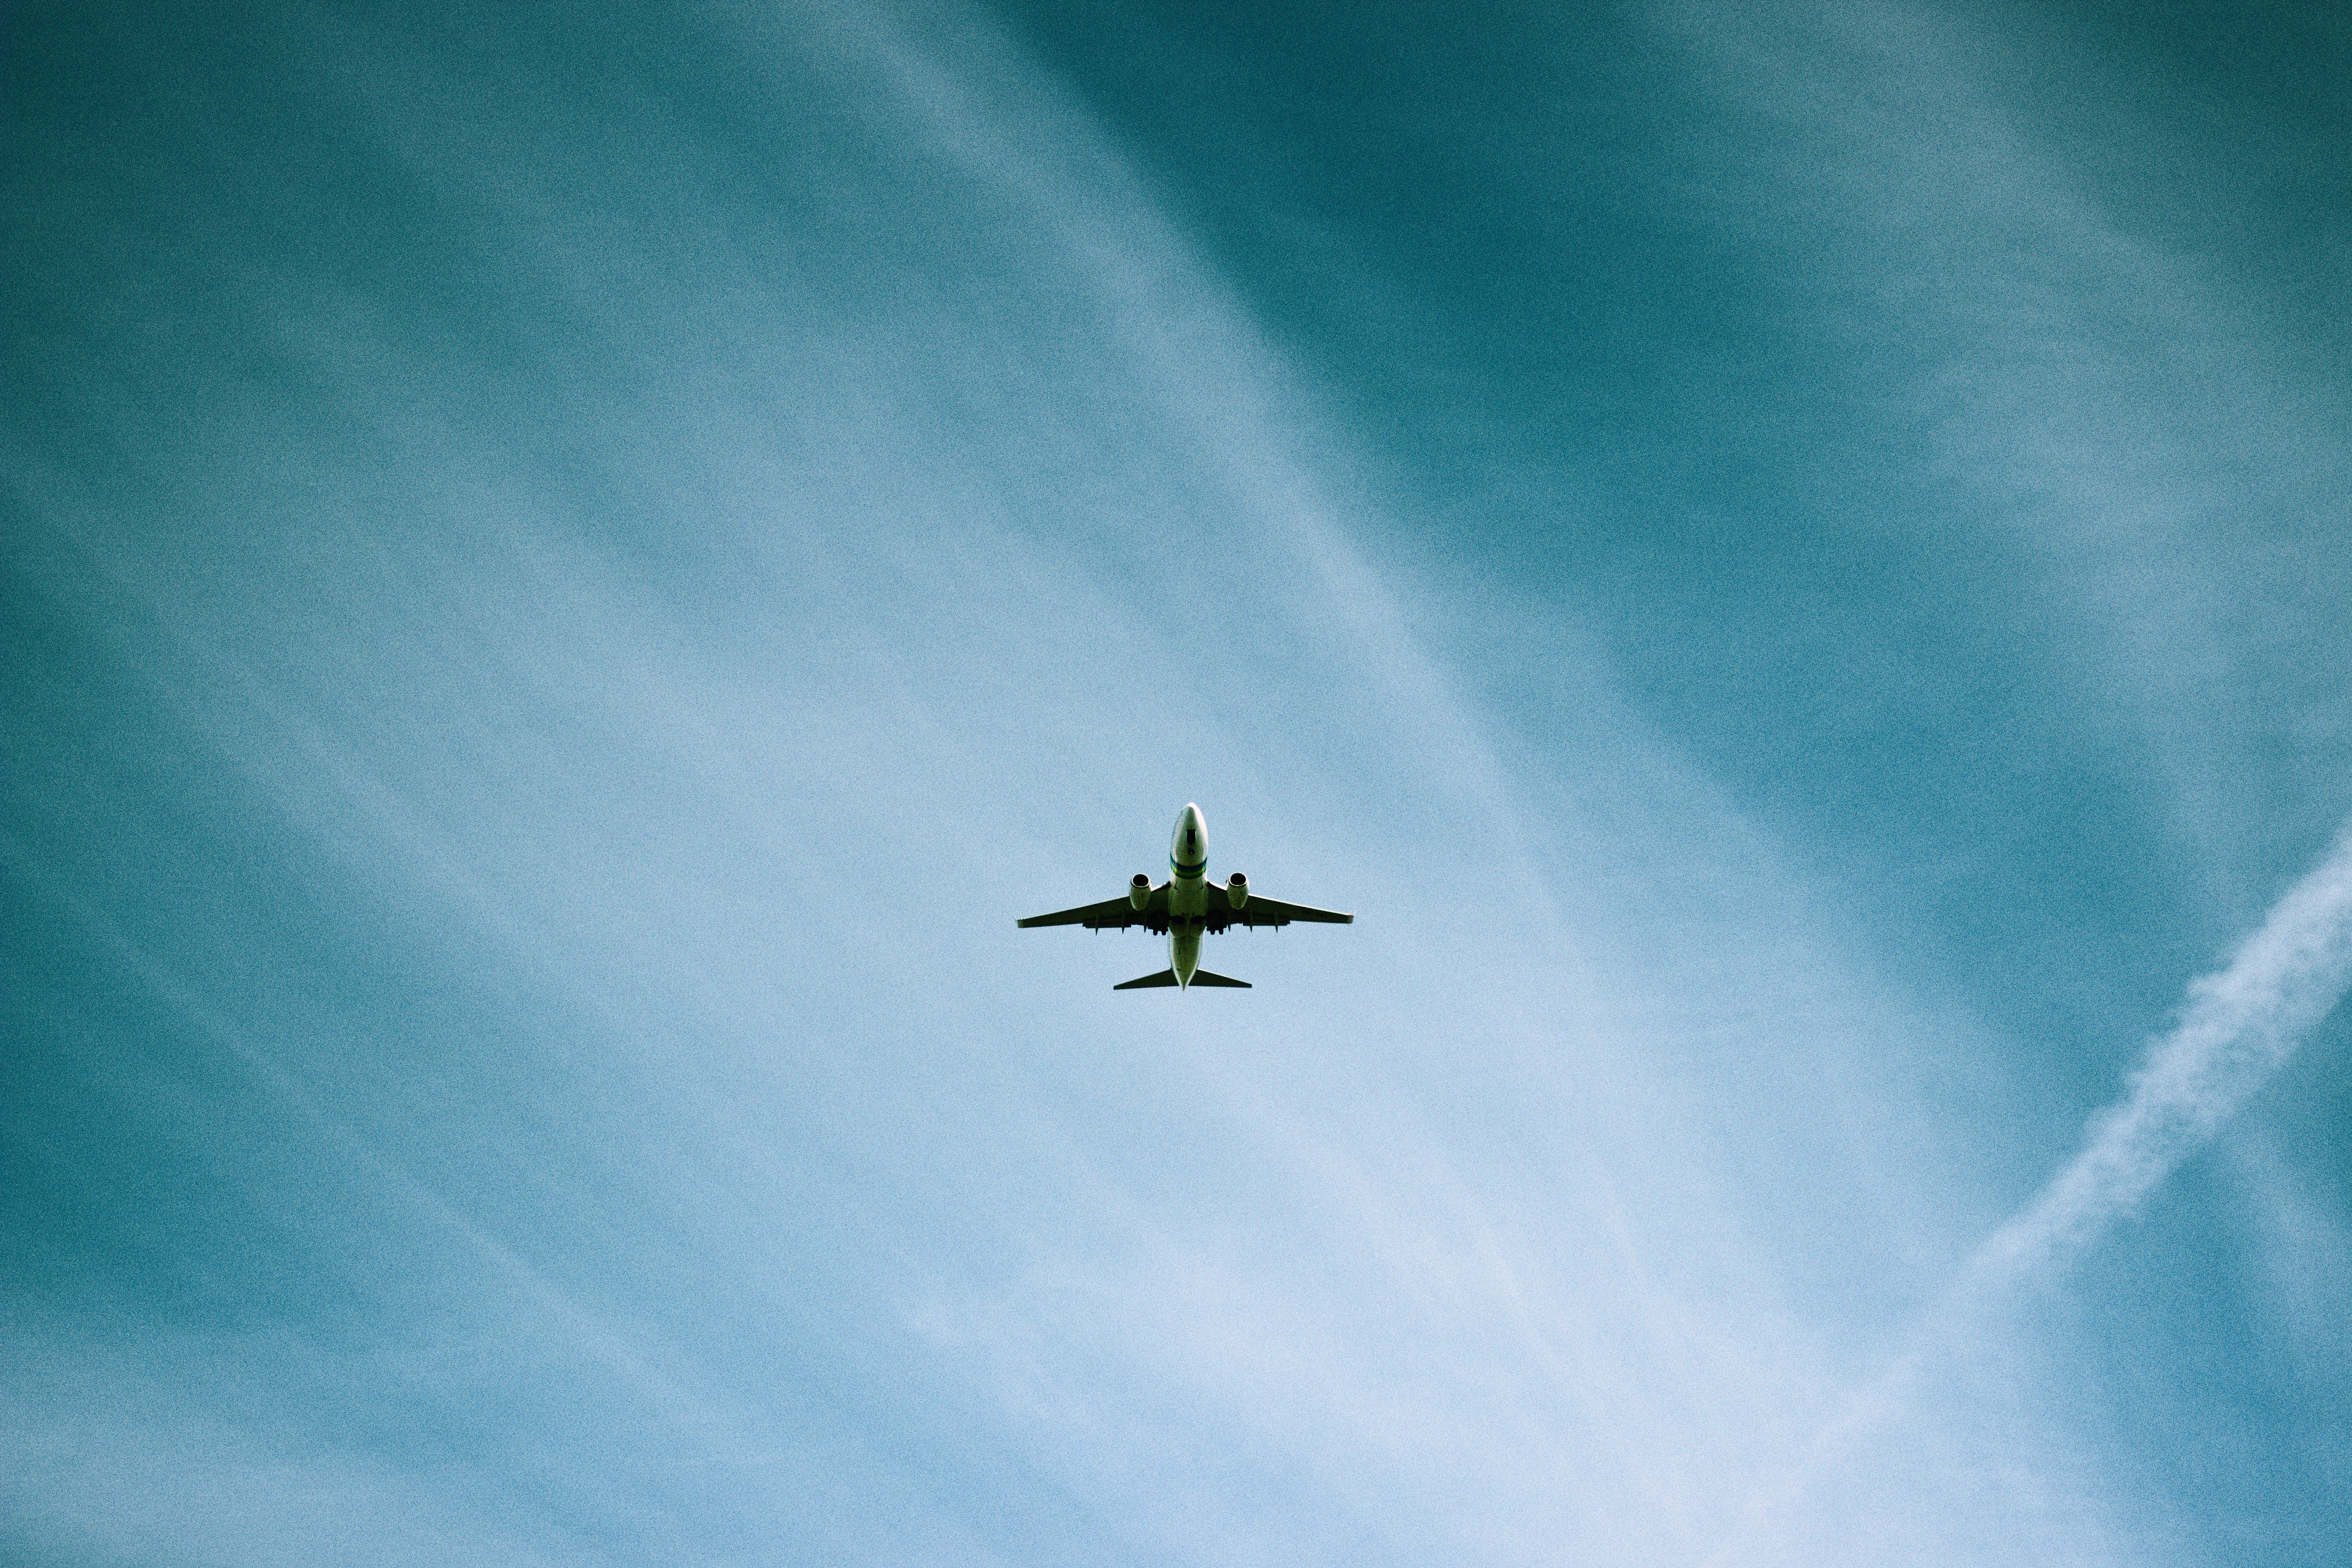 Plane flying through light clouds